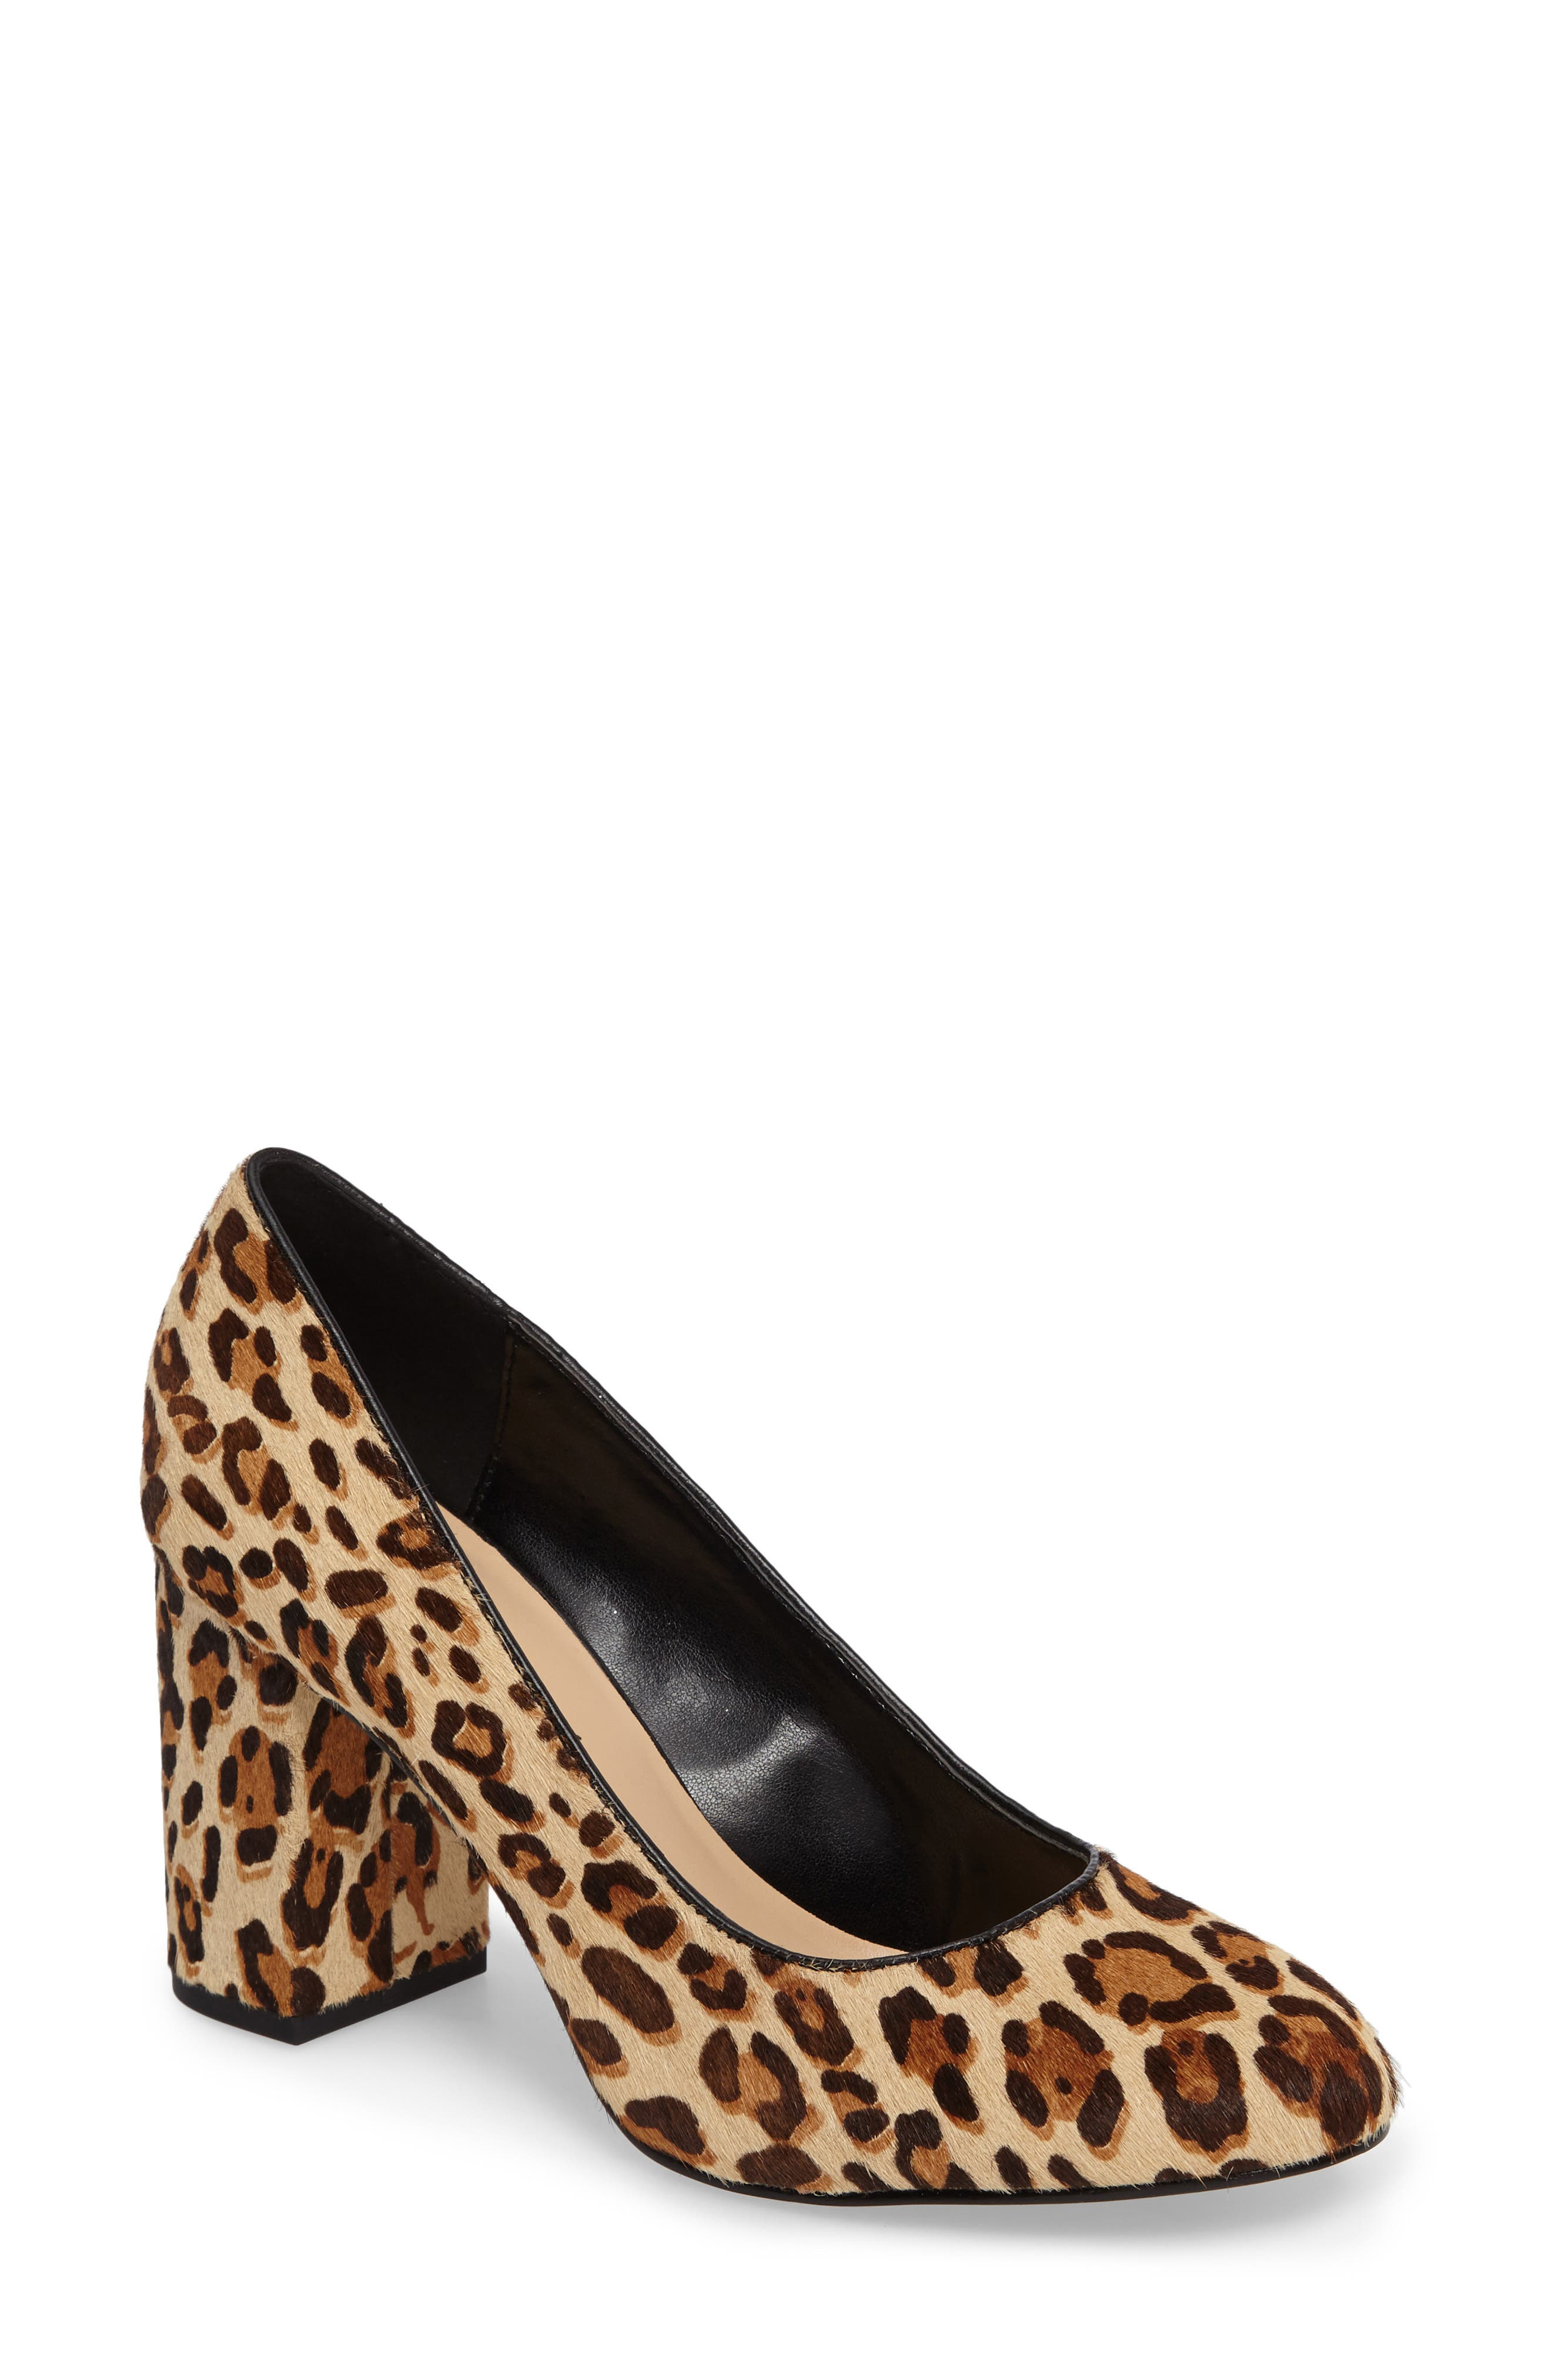 'Nara' Block Heel Pump,                             Main thumbnail 1, color,                             Leopard Pony Calf Hair